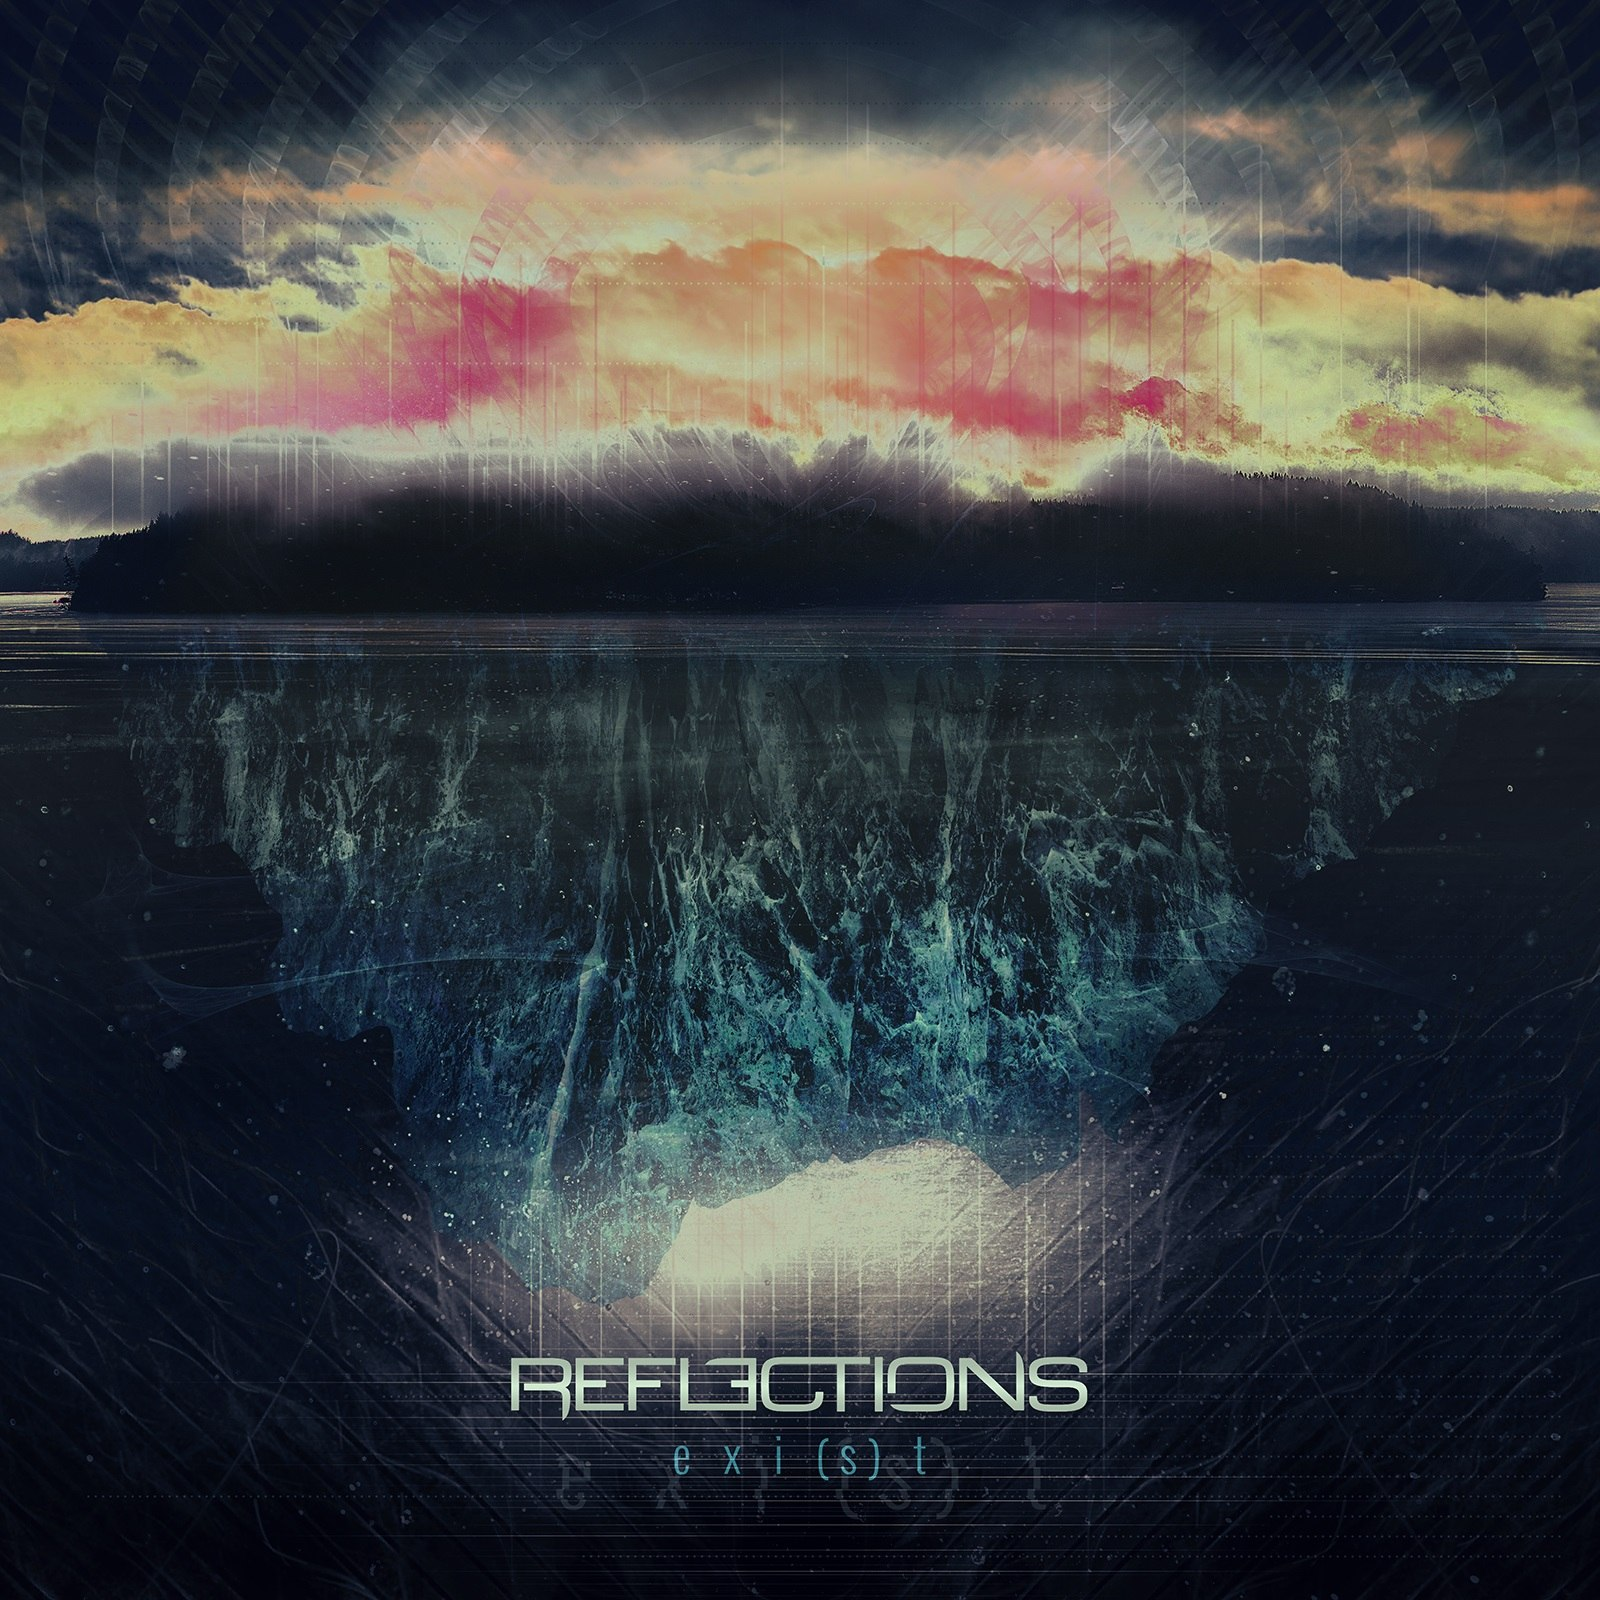 Reflections - Exi(s)t (2013)